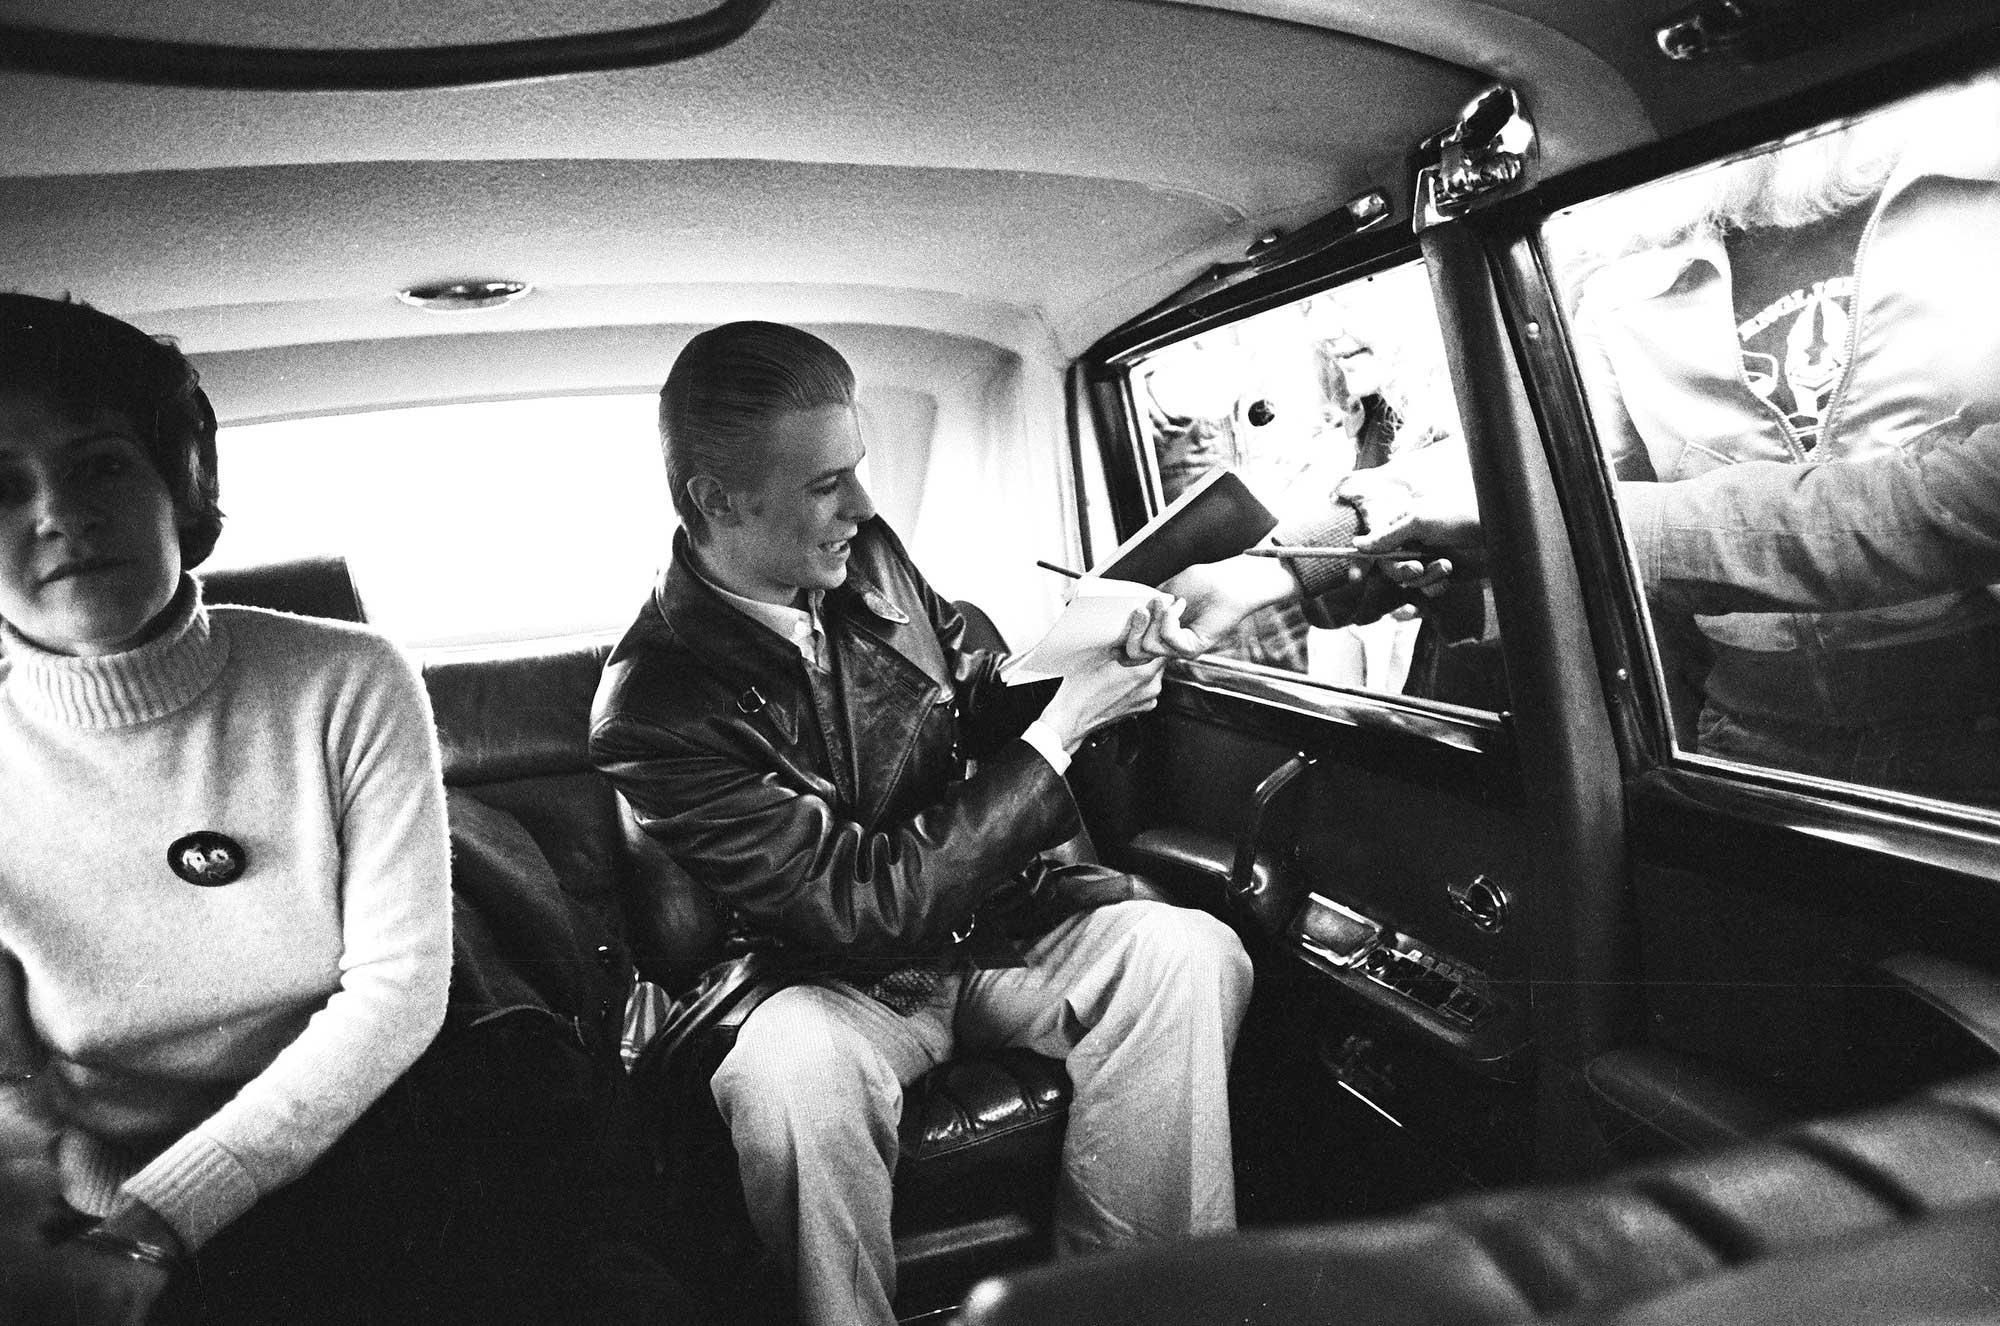 David Bowie signs an autograph in the back of his limousine 1976